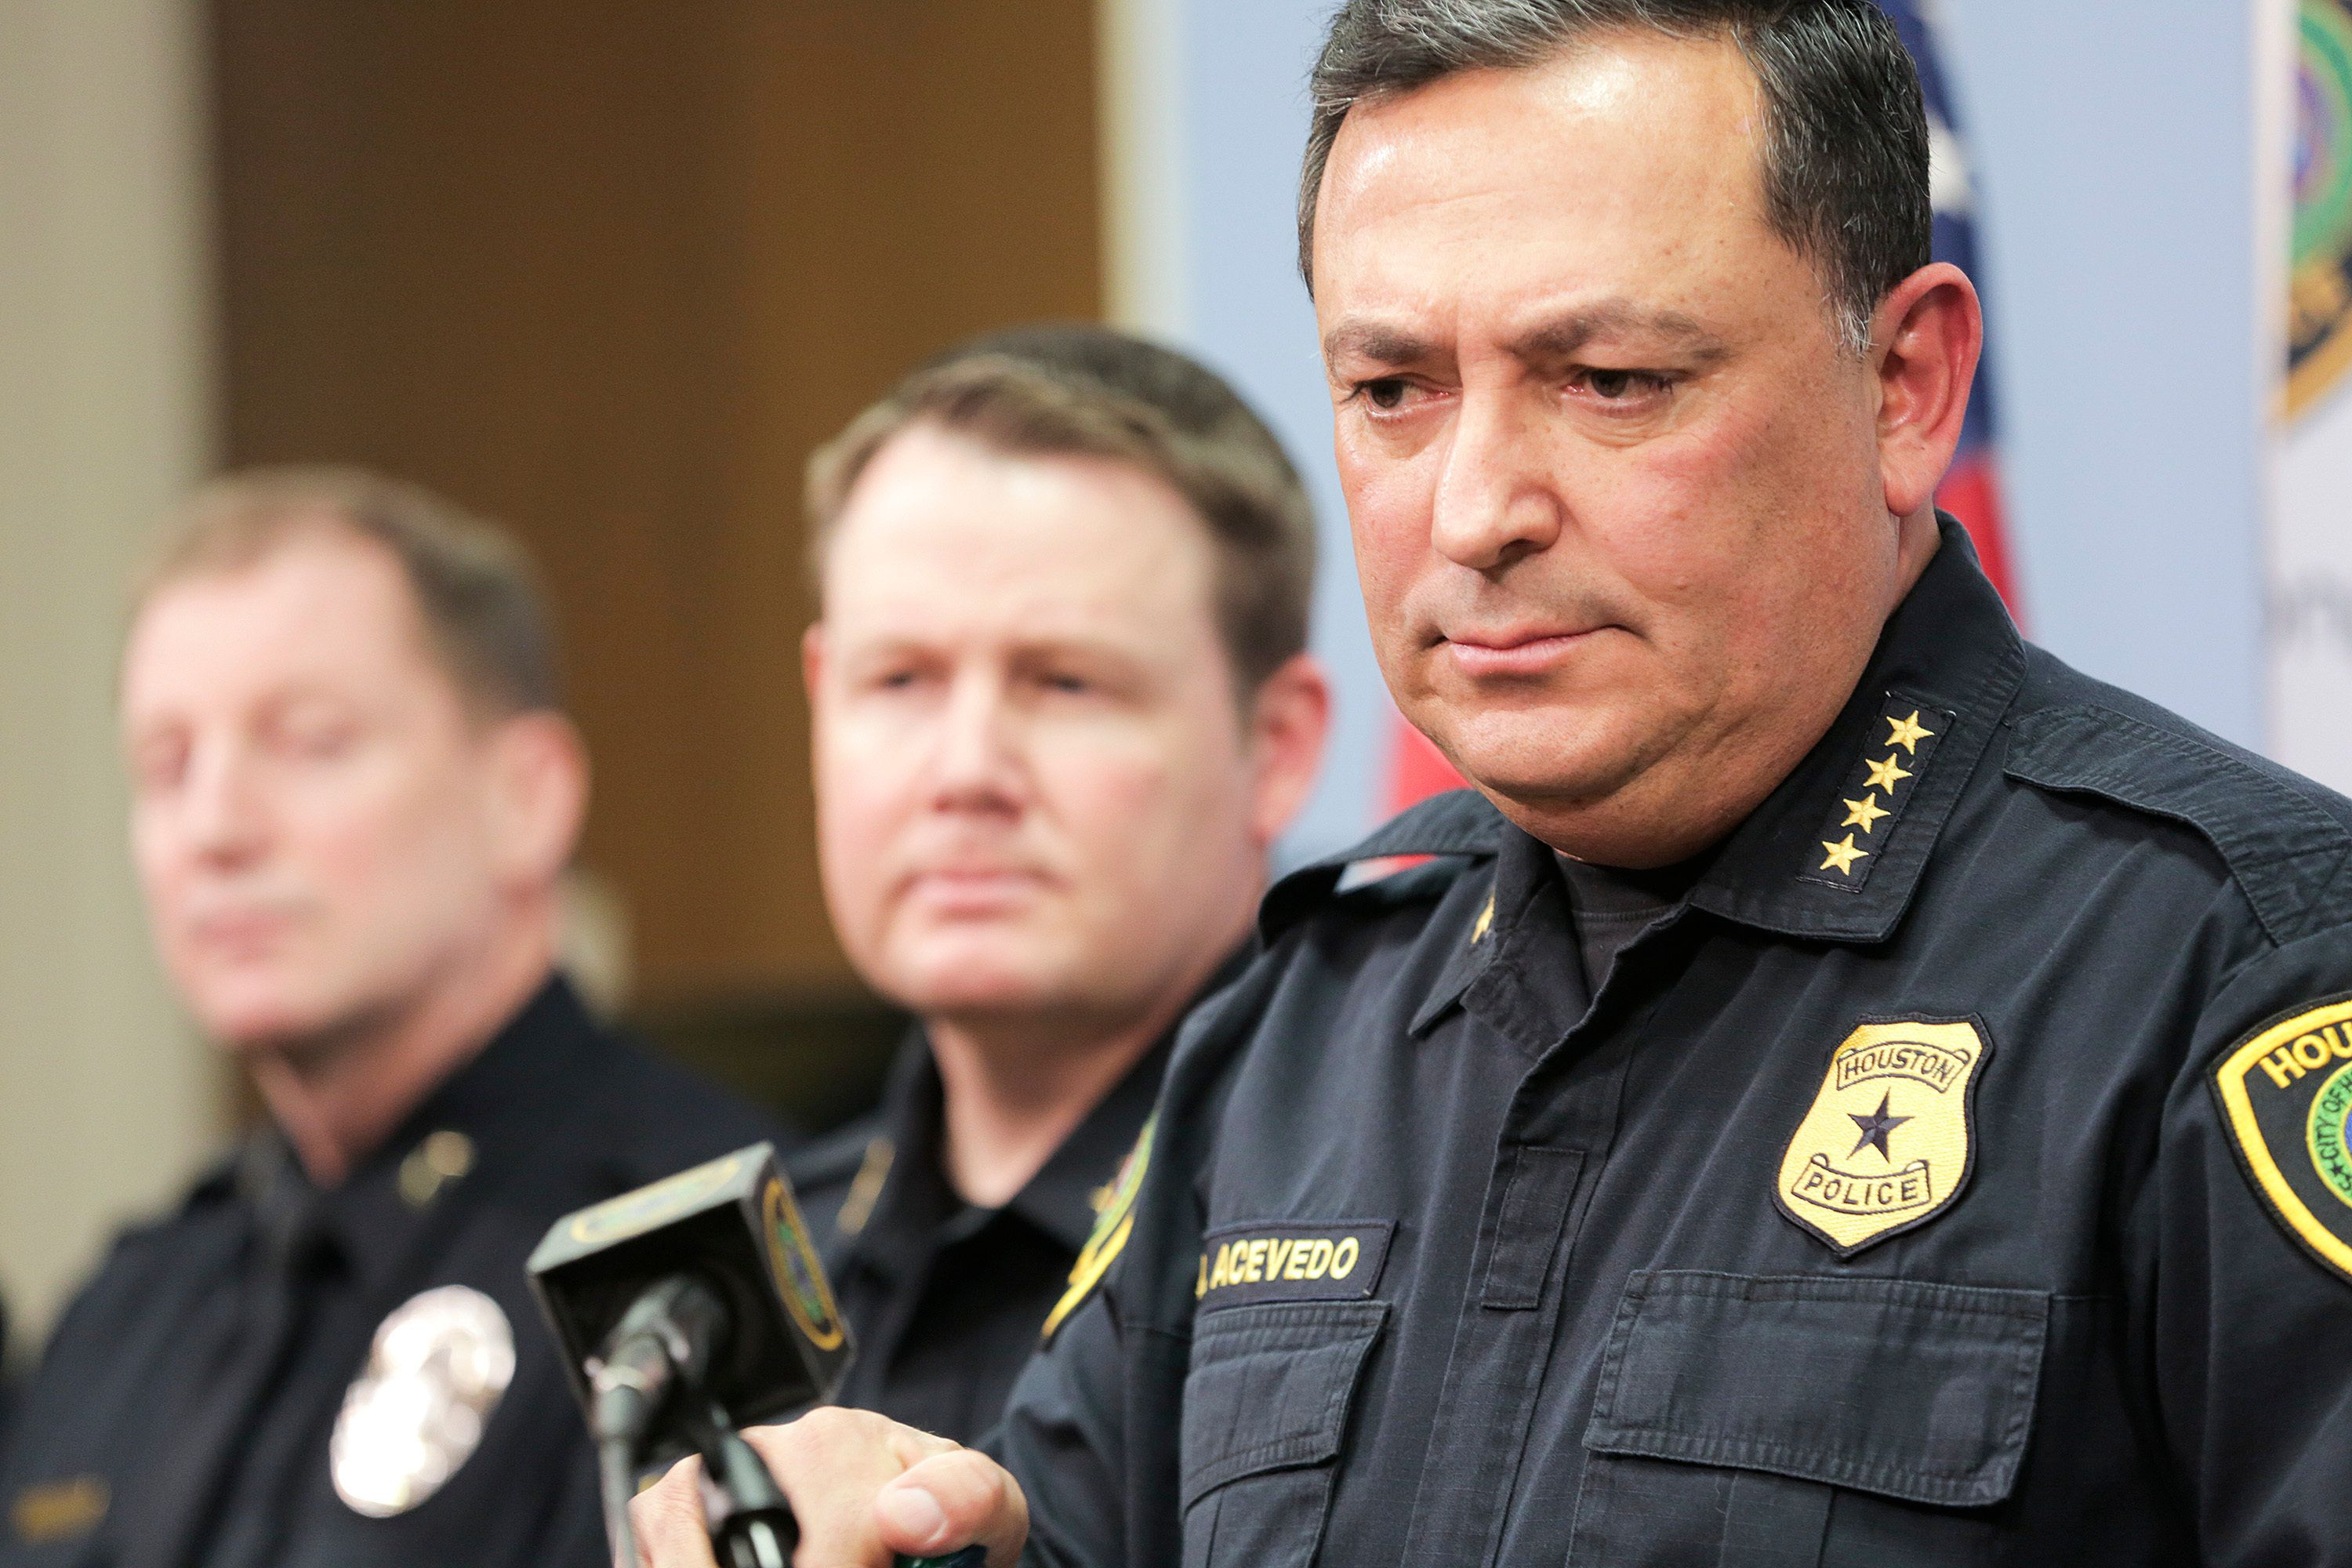 Houston Police Chief Art Acevedo talks to the media during a press conference at the police station, Friday, Feb. 15, 2019 in Houston. A lead investigator lied in an affidavit justifying a drug raid on a Houston home in which two residents were killed and four undercover officers were shot and wounded during a gun battle, the city's police chief said Friday.   ( Elizabeth Conley/Houston Chronicle via AP)